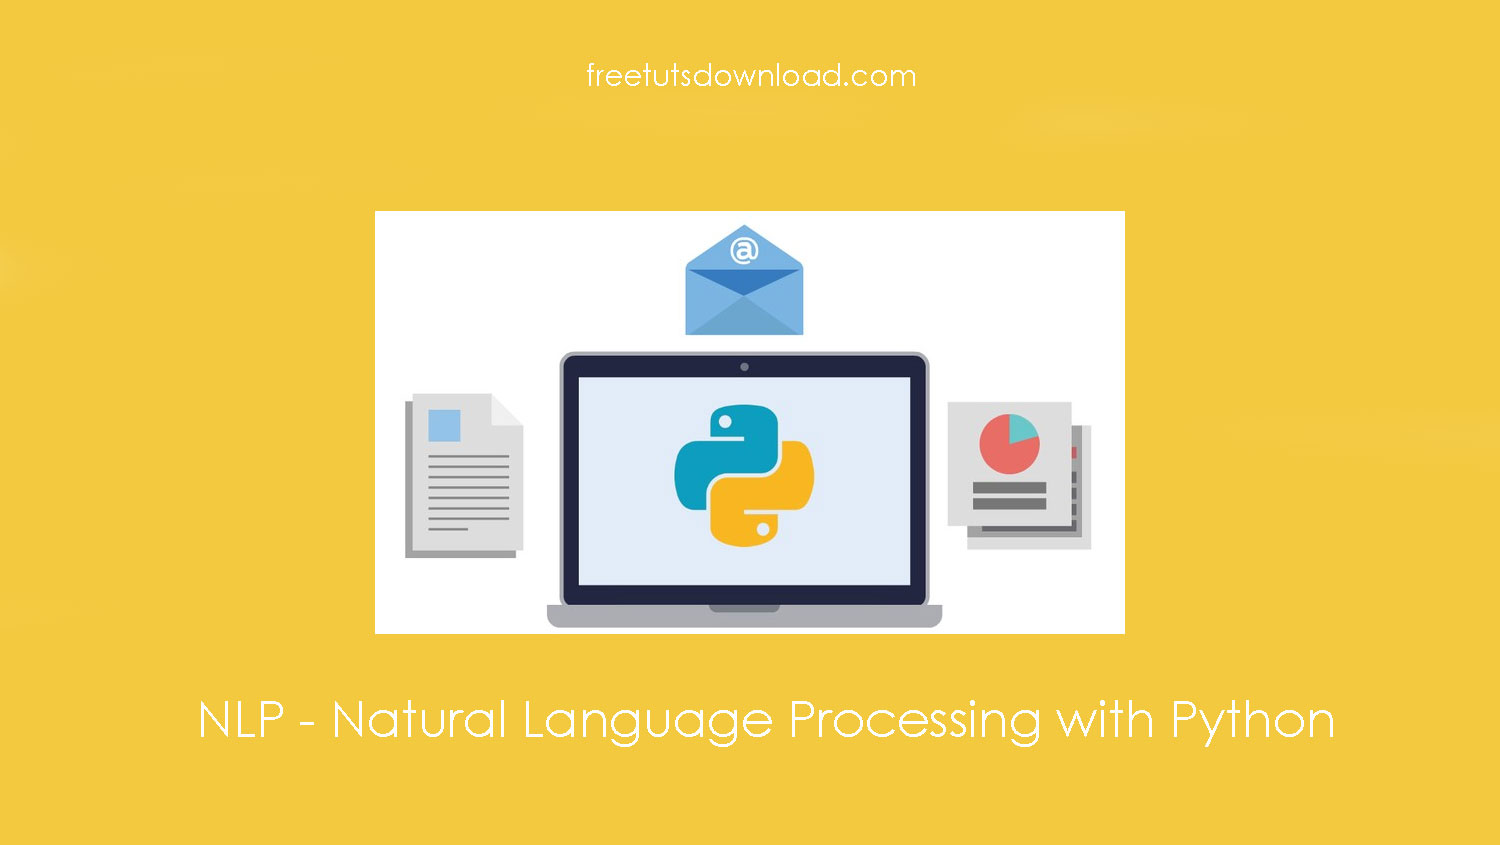 NLP - Natural Language Processing with Python free download